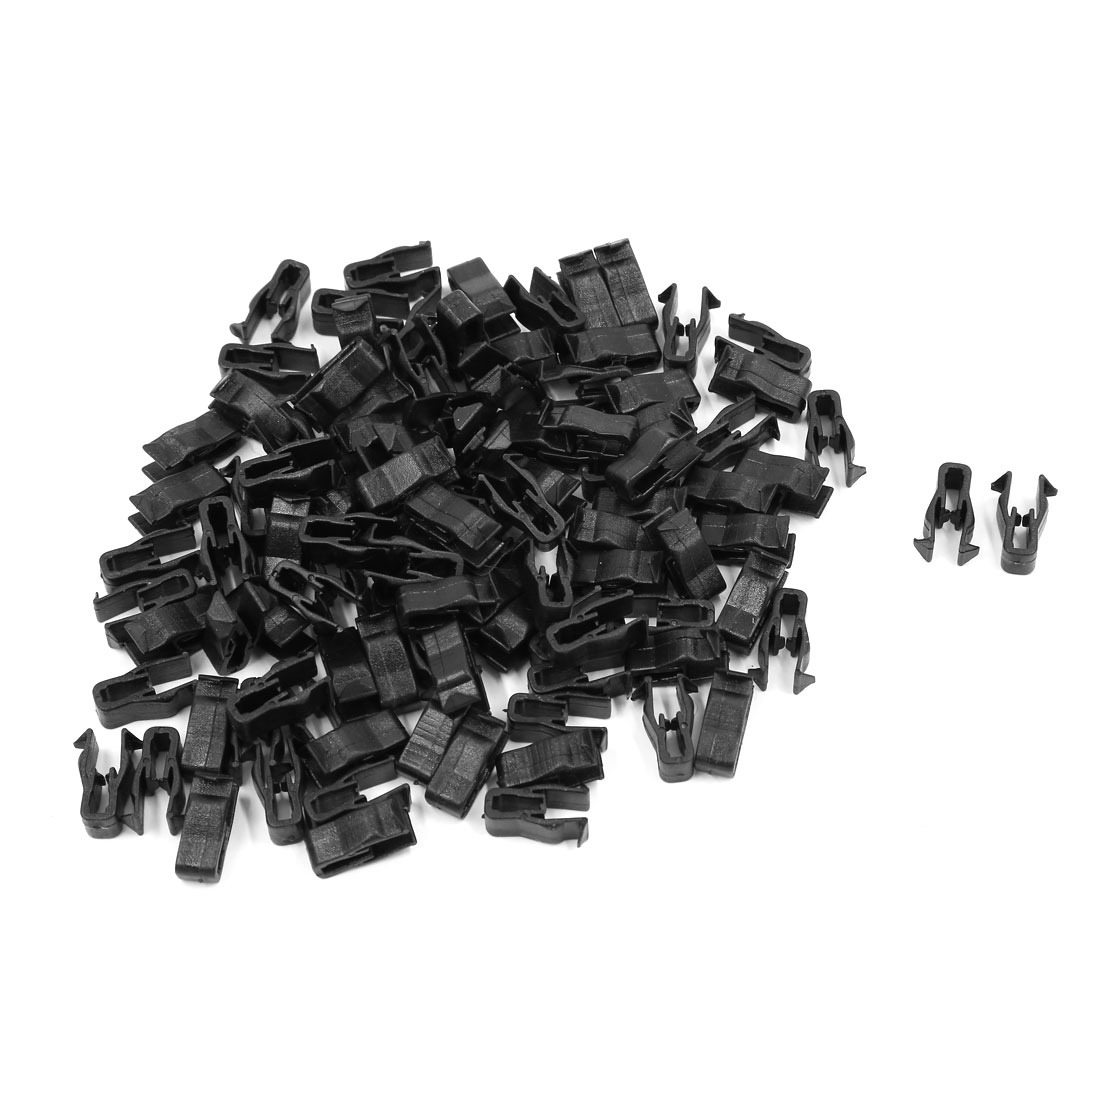 100 Pcs Black Plastic Rivet Trim Fastener Moulding Clips for 6mm Hole Diameter